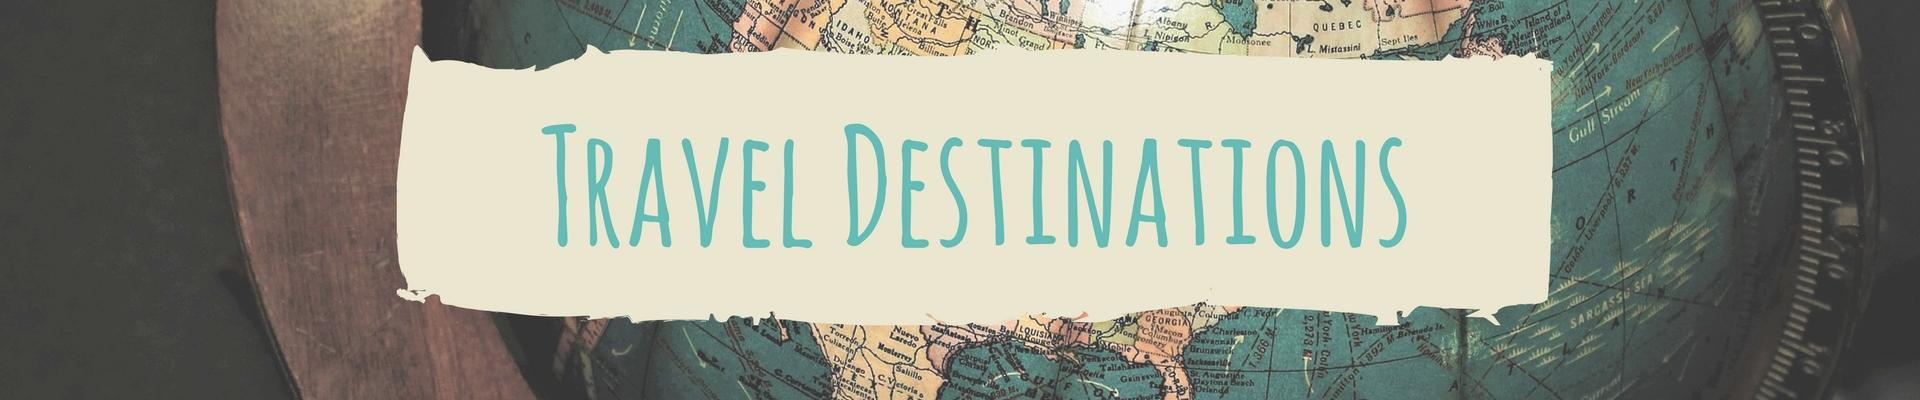 Two Travel The World - Travel Destinations